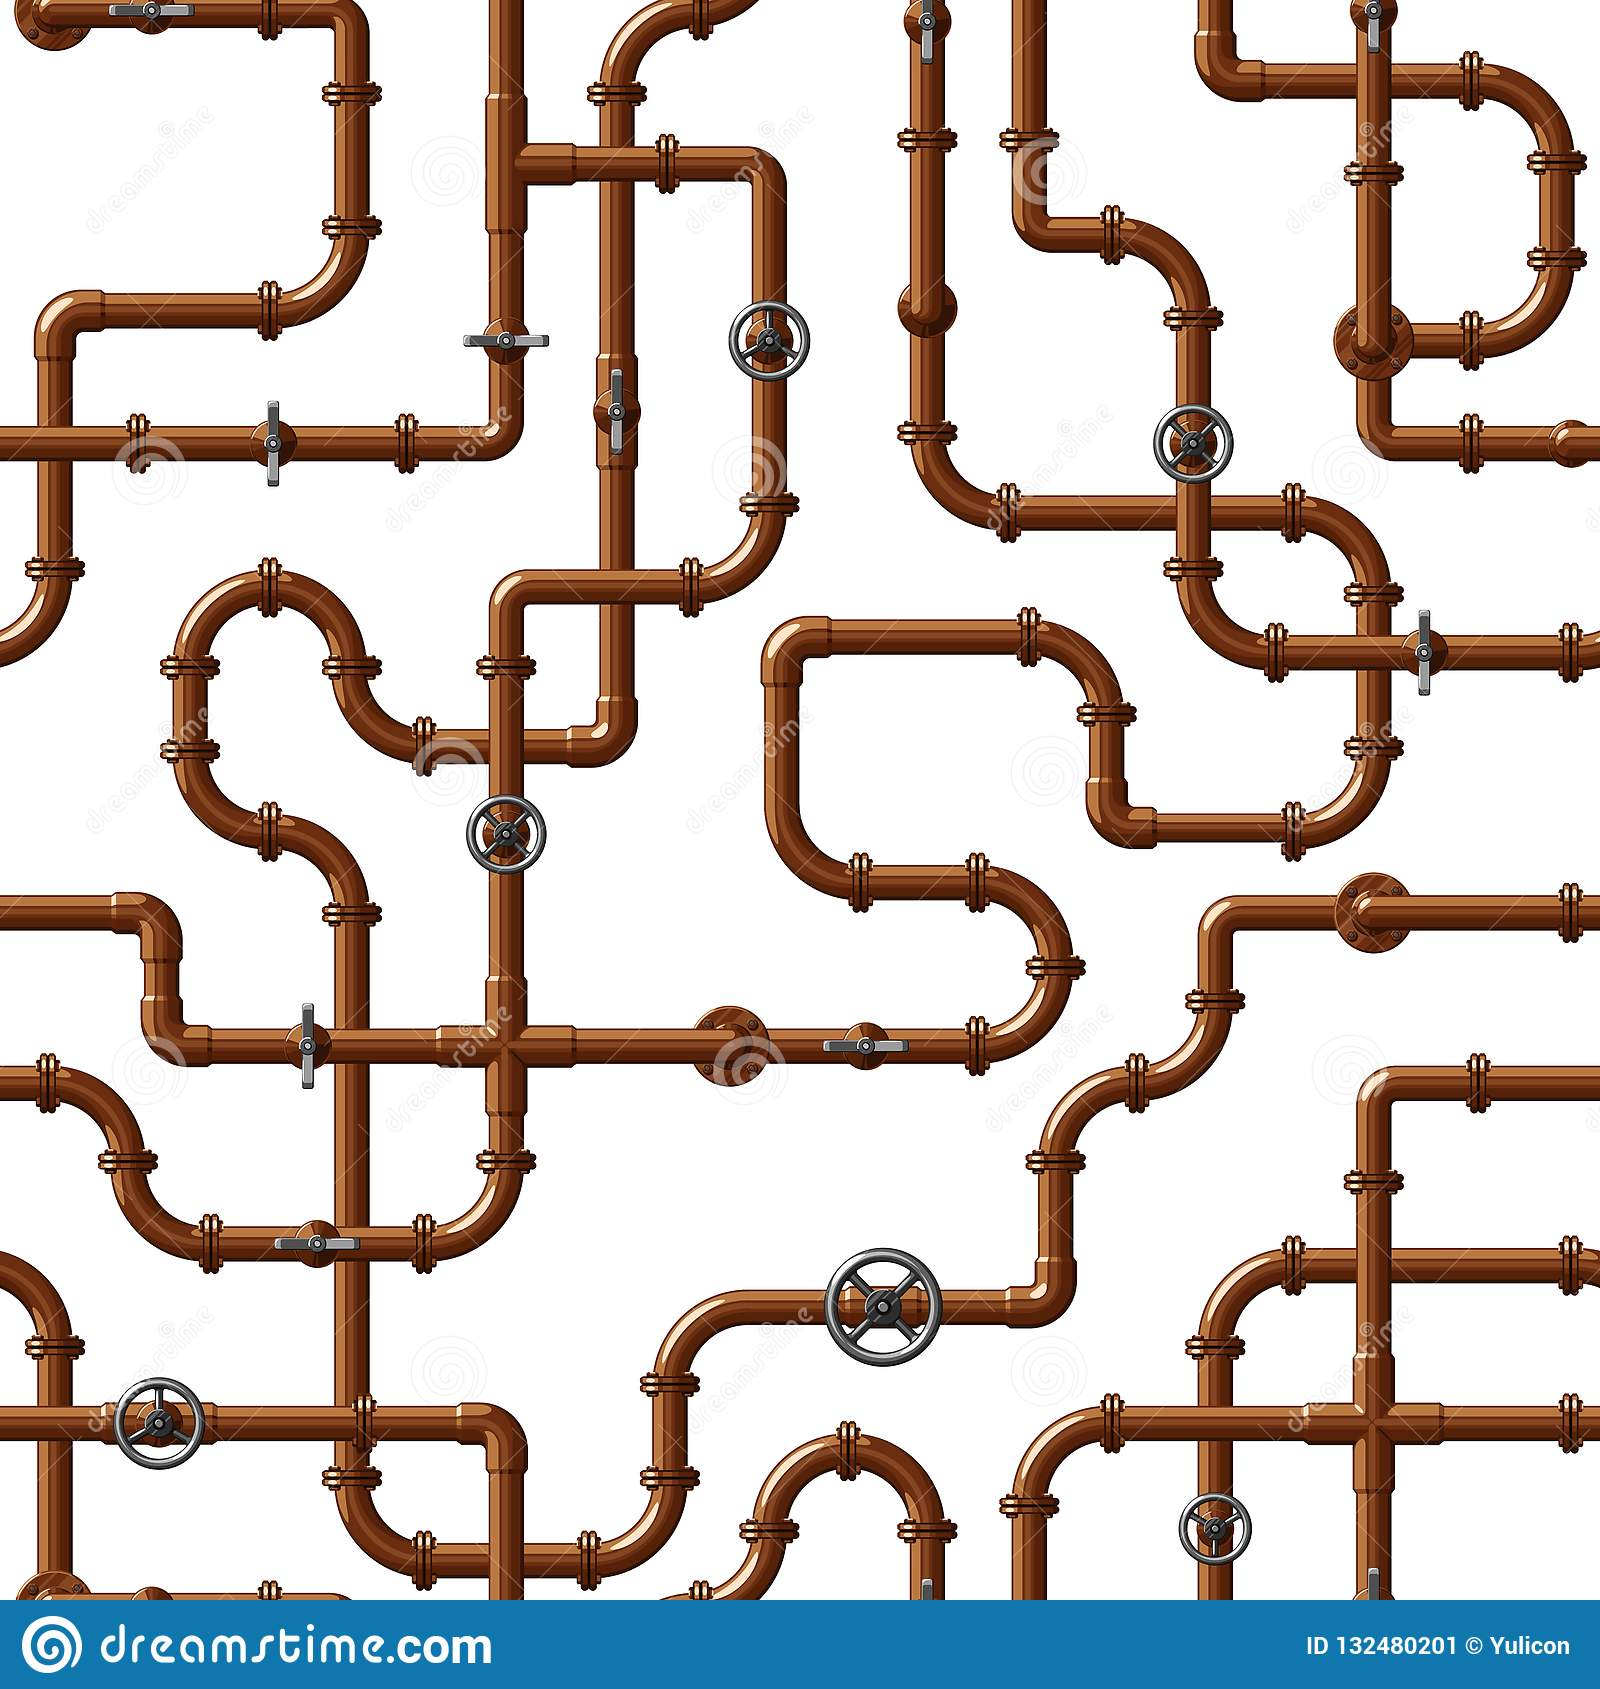 Seamless vector pattern of interlocking copper water pipes with valves